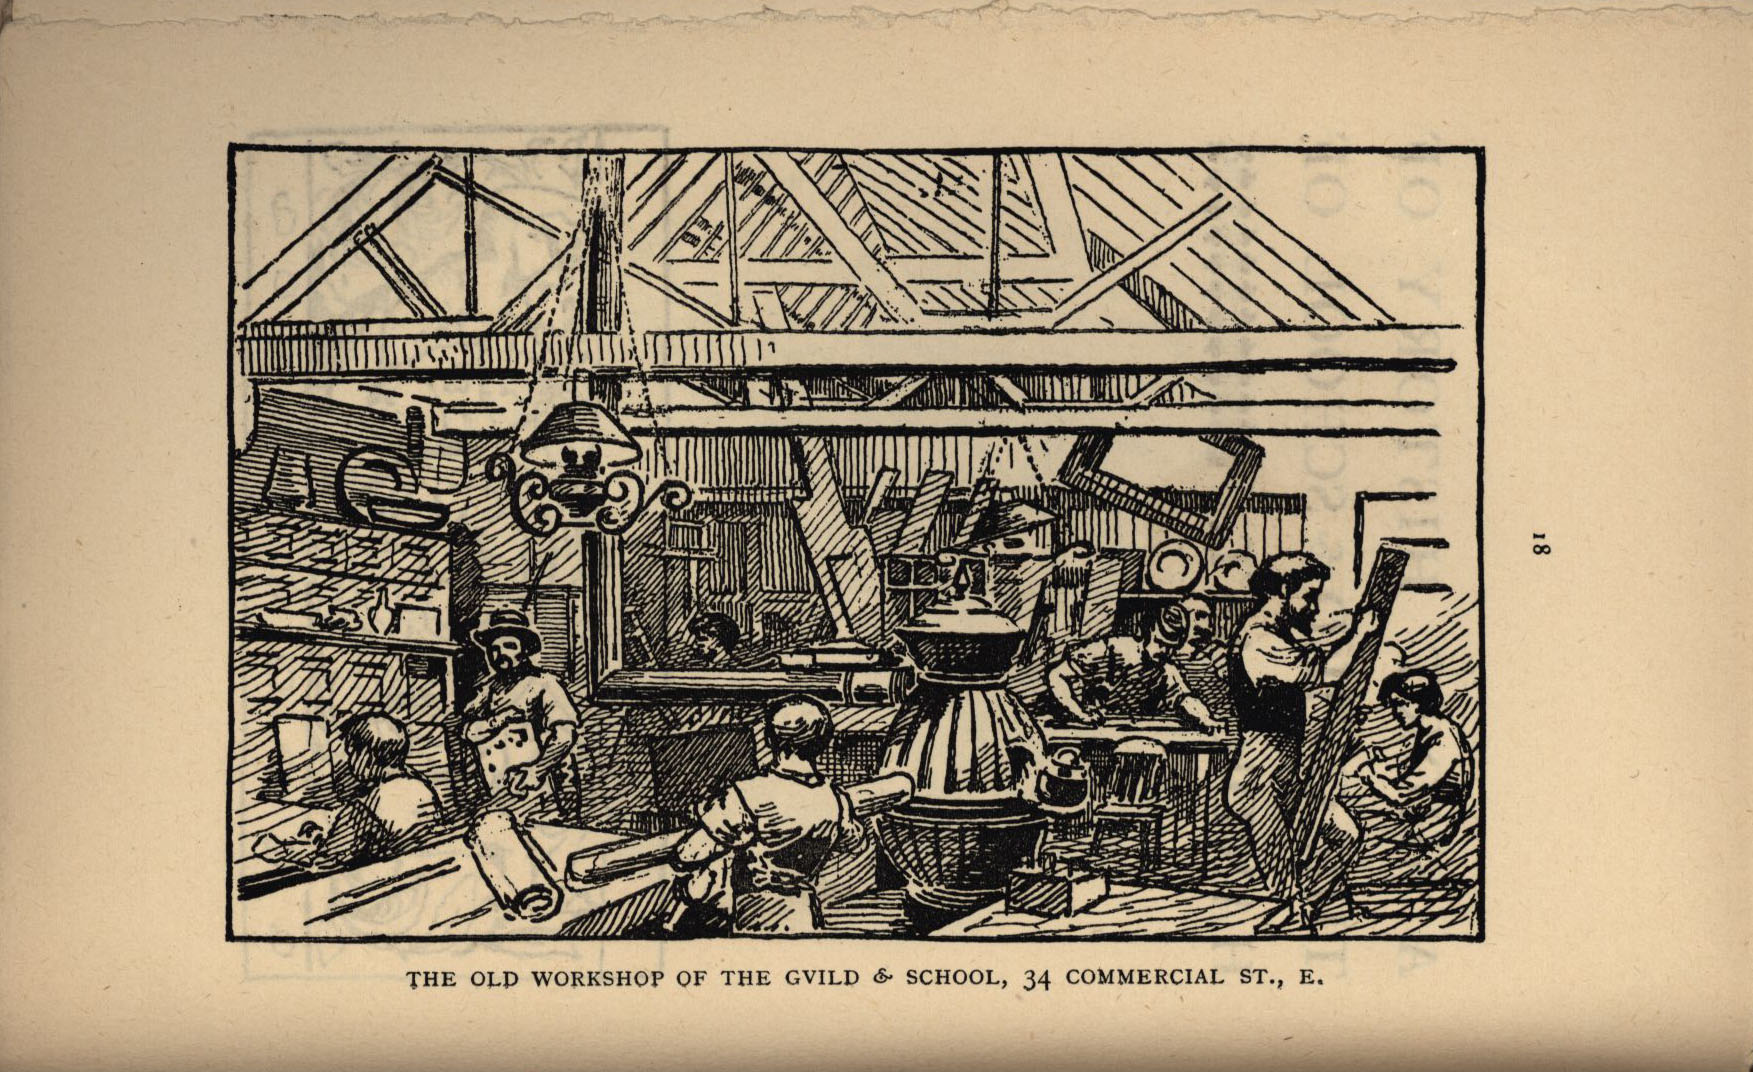 Workshop of the Guild and School of Handicraft, 34 Commercial St. [Ashbee (1890) 'Transactions of the Guild & School of Handicraft, vol. I., 1890', p.18]